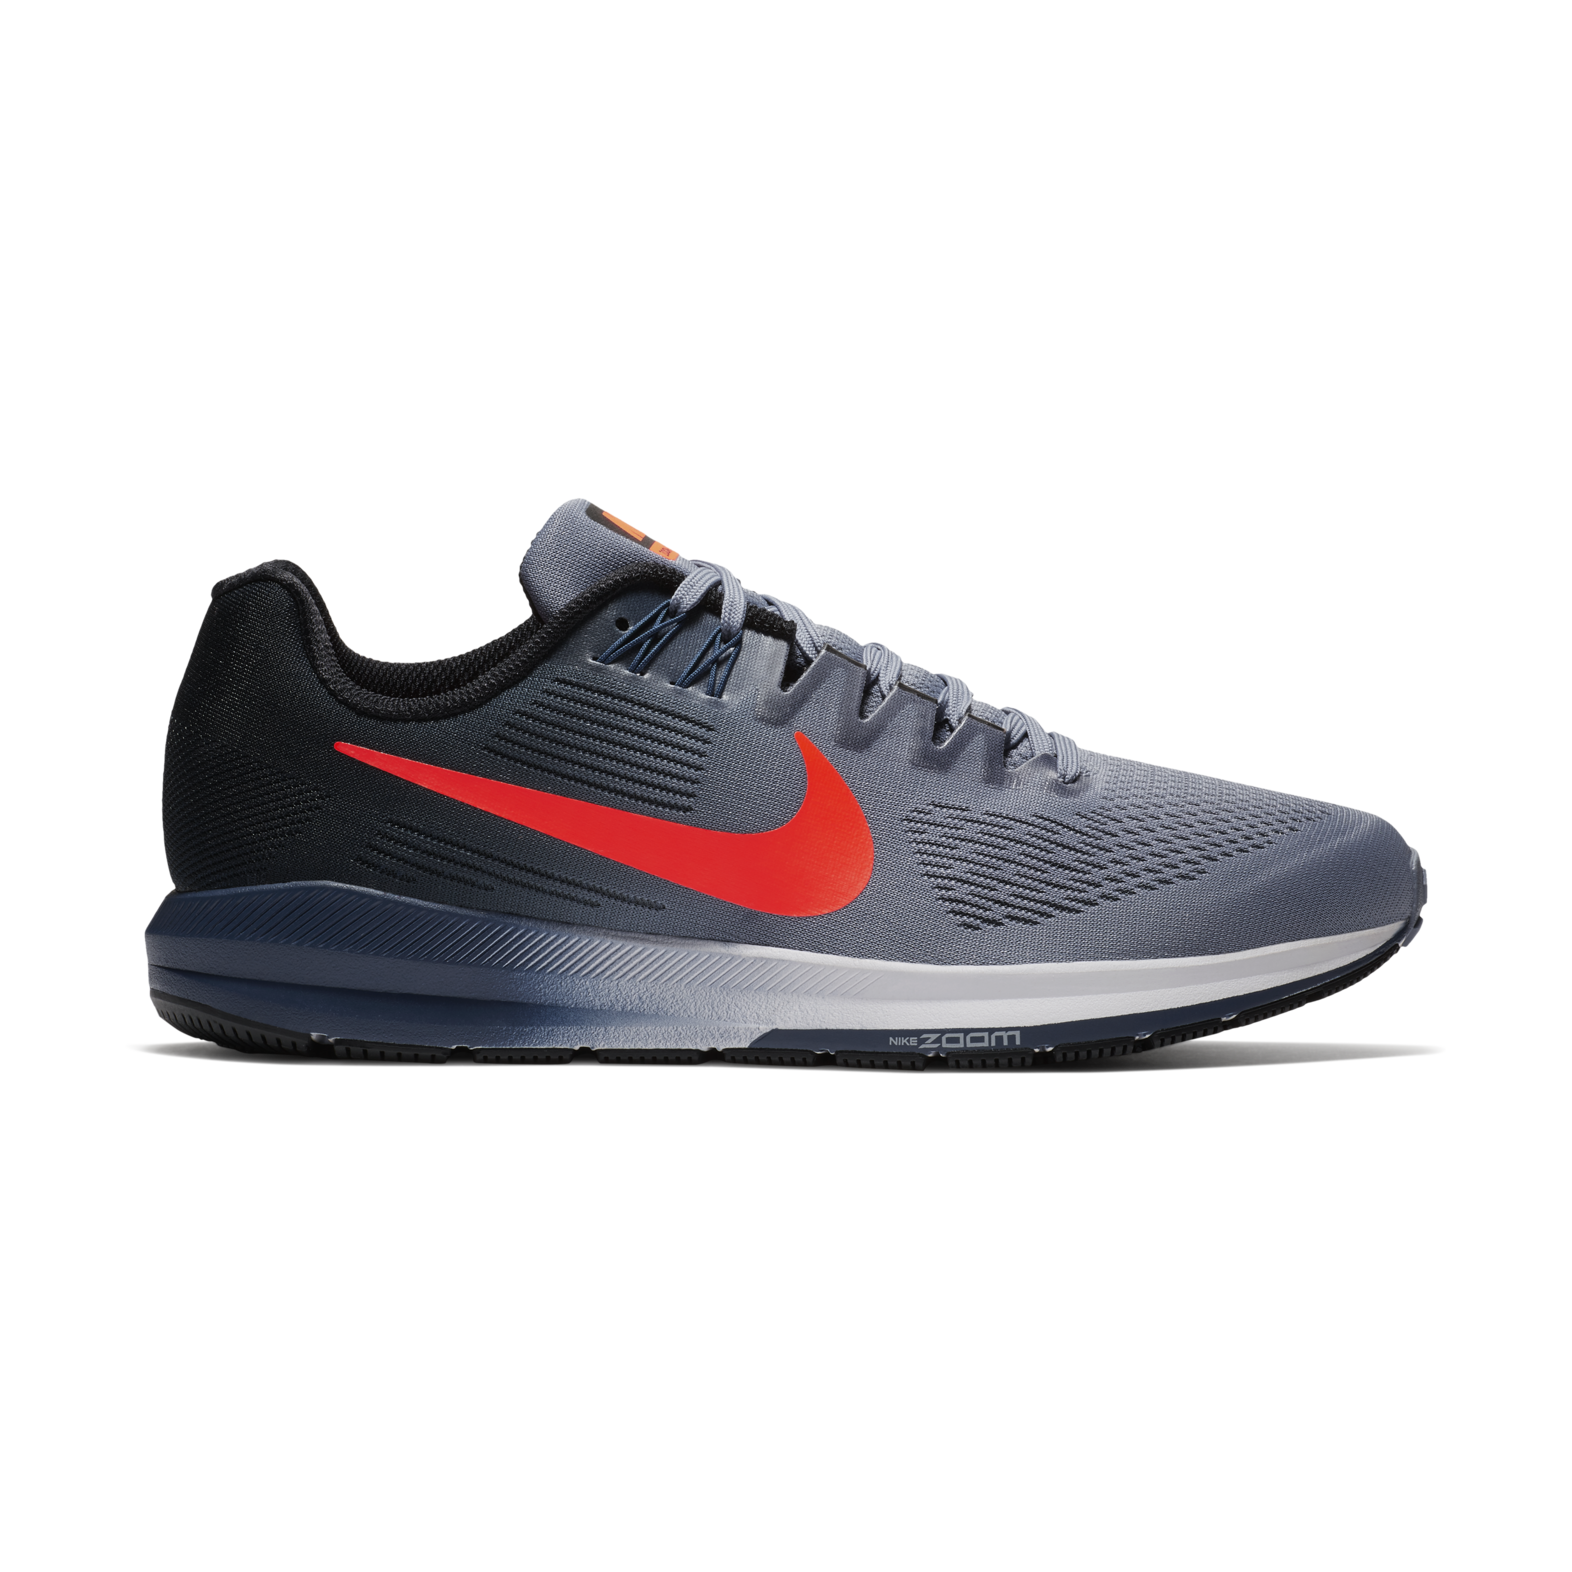 18e8d90339317 NIKE AIR ZOOM STRUCTURE 21 MENS - Poobie Naidoos